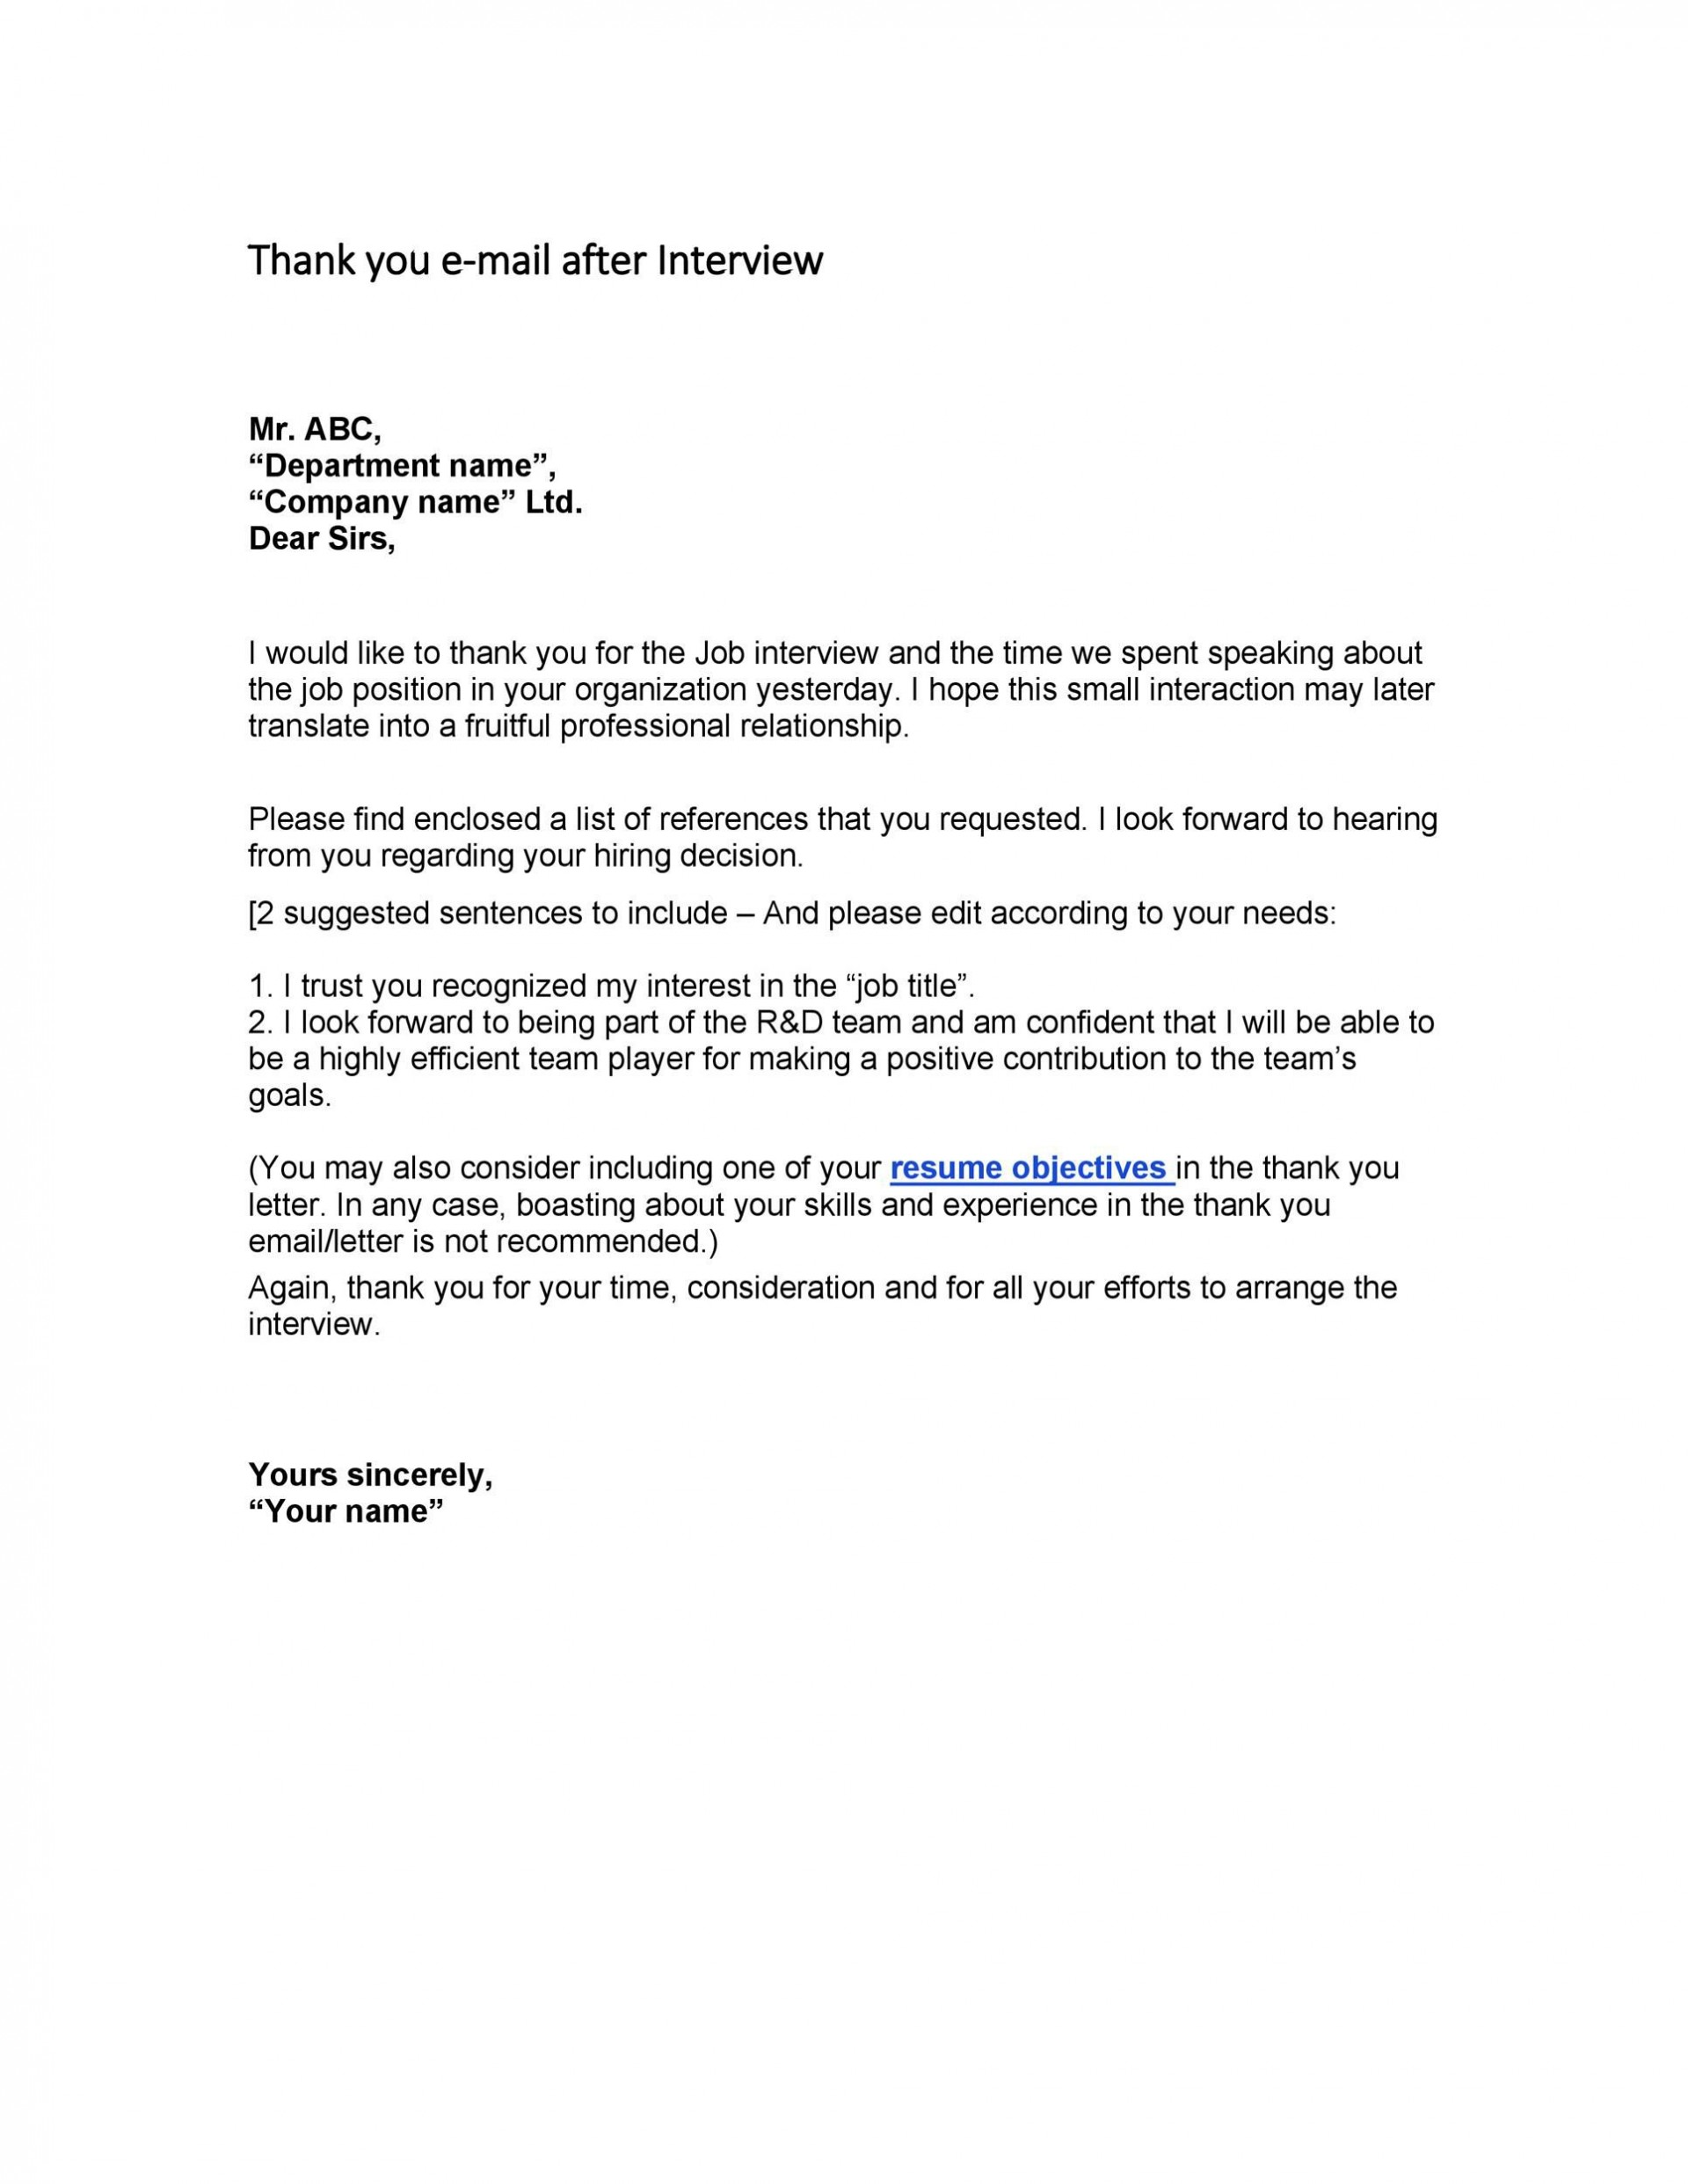 008 Sensational Interview Thank You Email Template High Definition  After Phone Sample 2nd Post1920